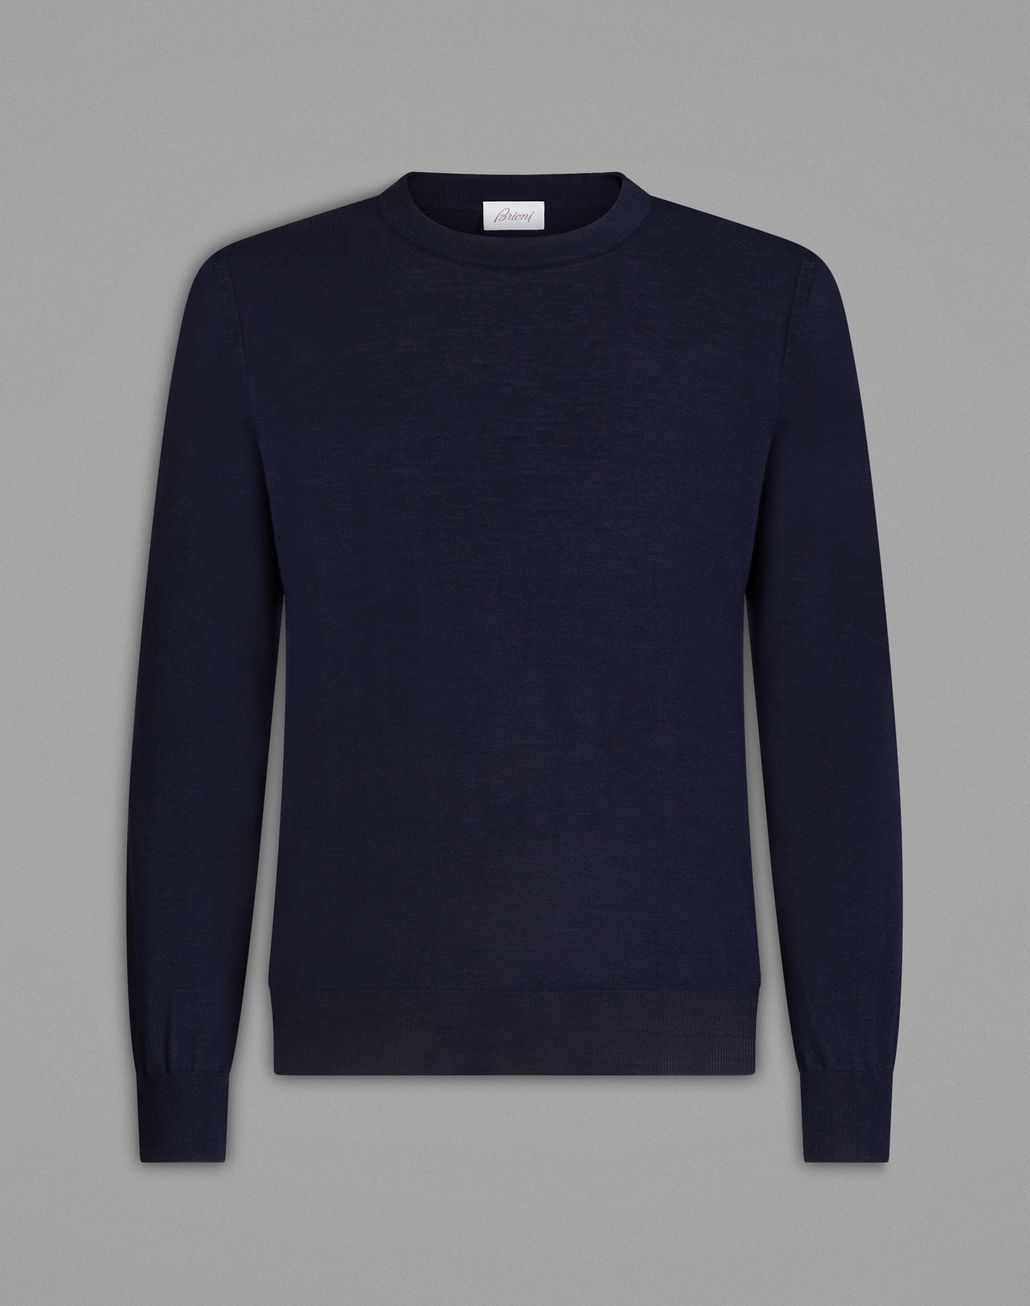 BRIONI Navy Blue Crew-Neck Sweater Knitwear Man f